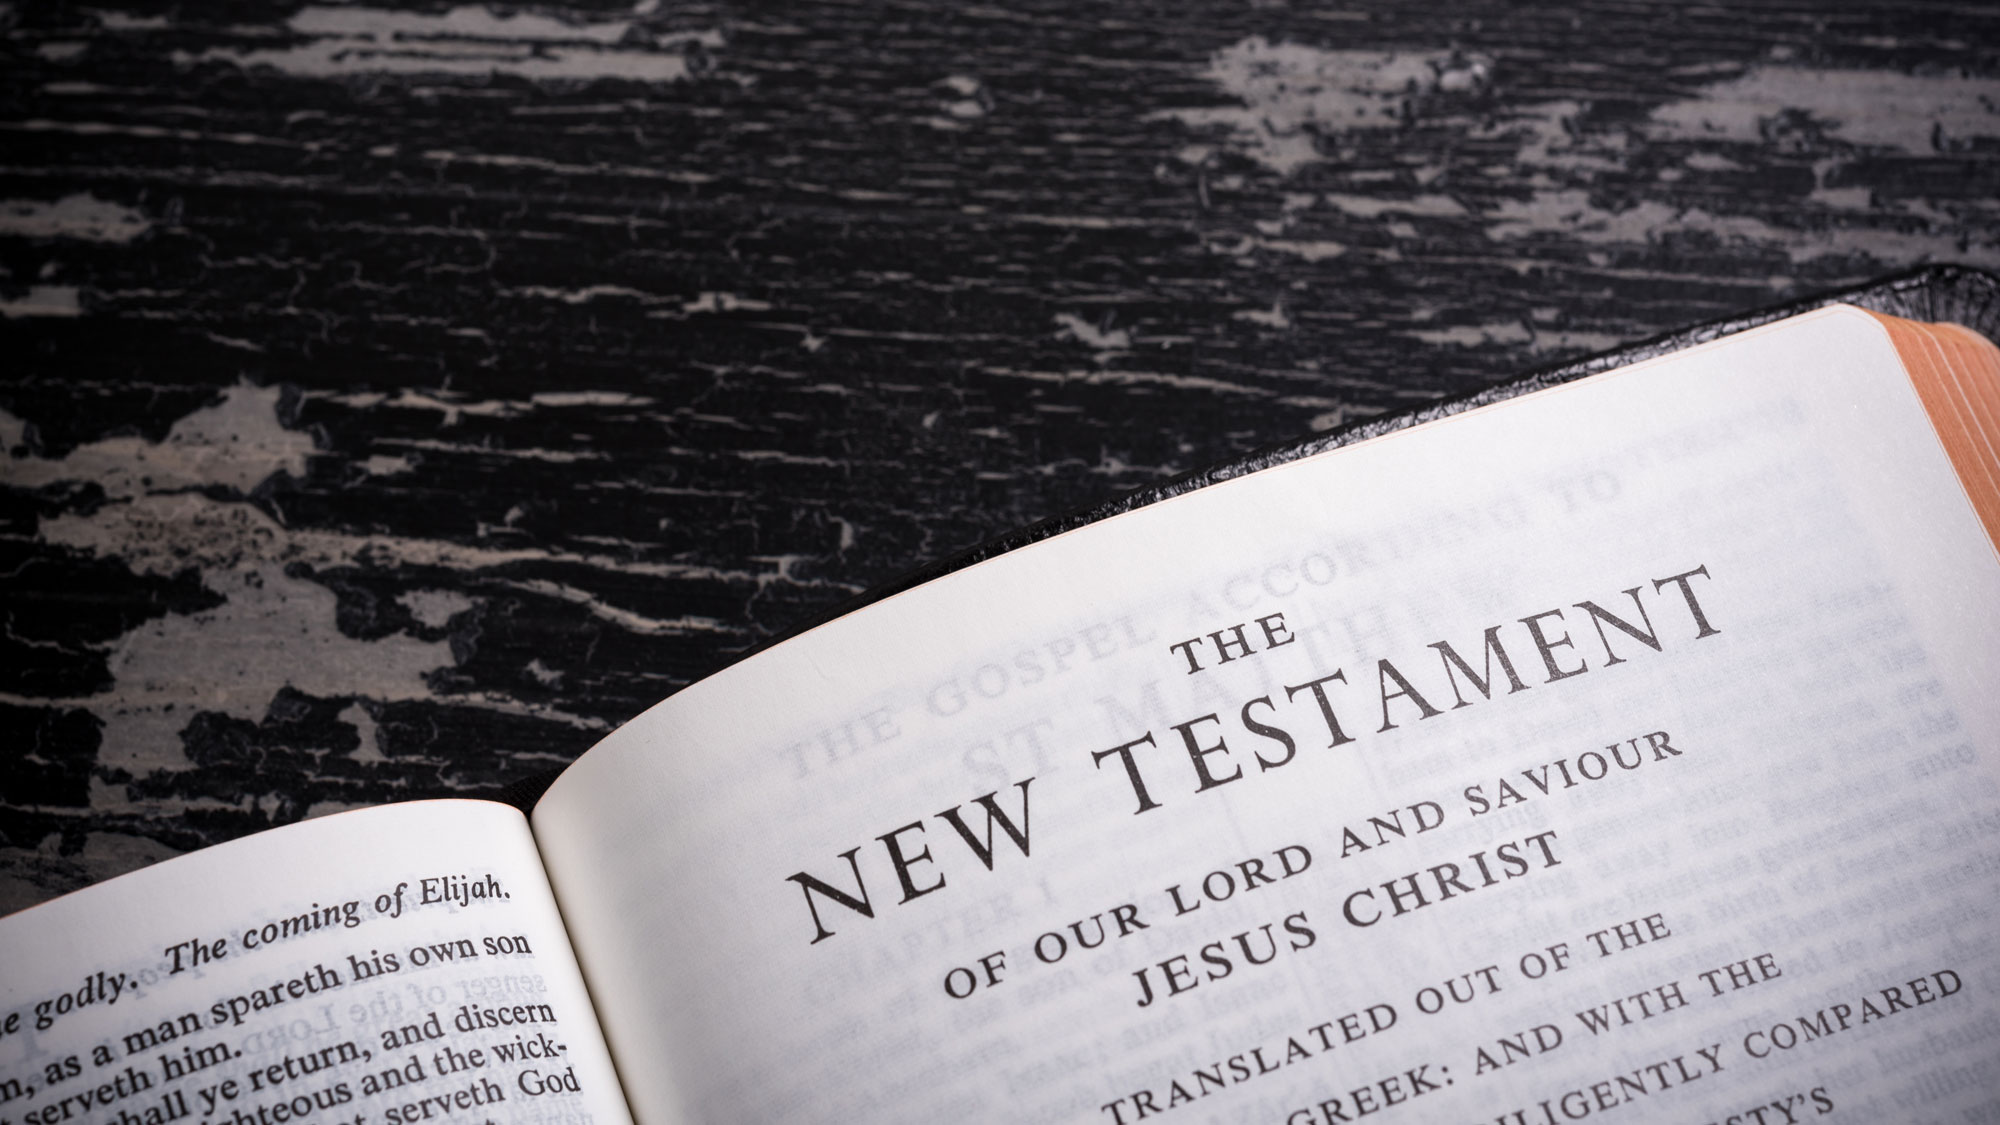 Come Follow Me 2019: Online New Testament Resources | Book of Mormon